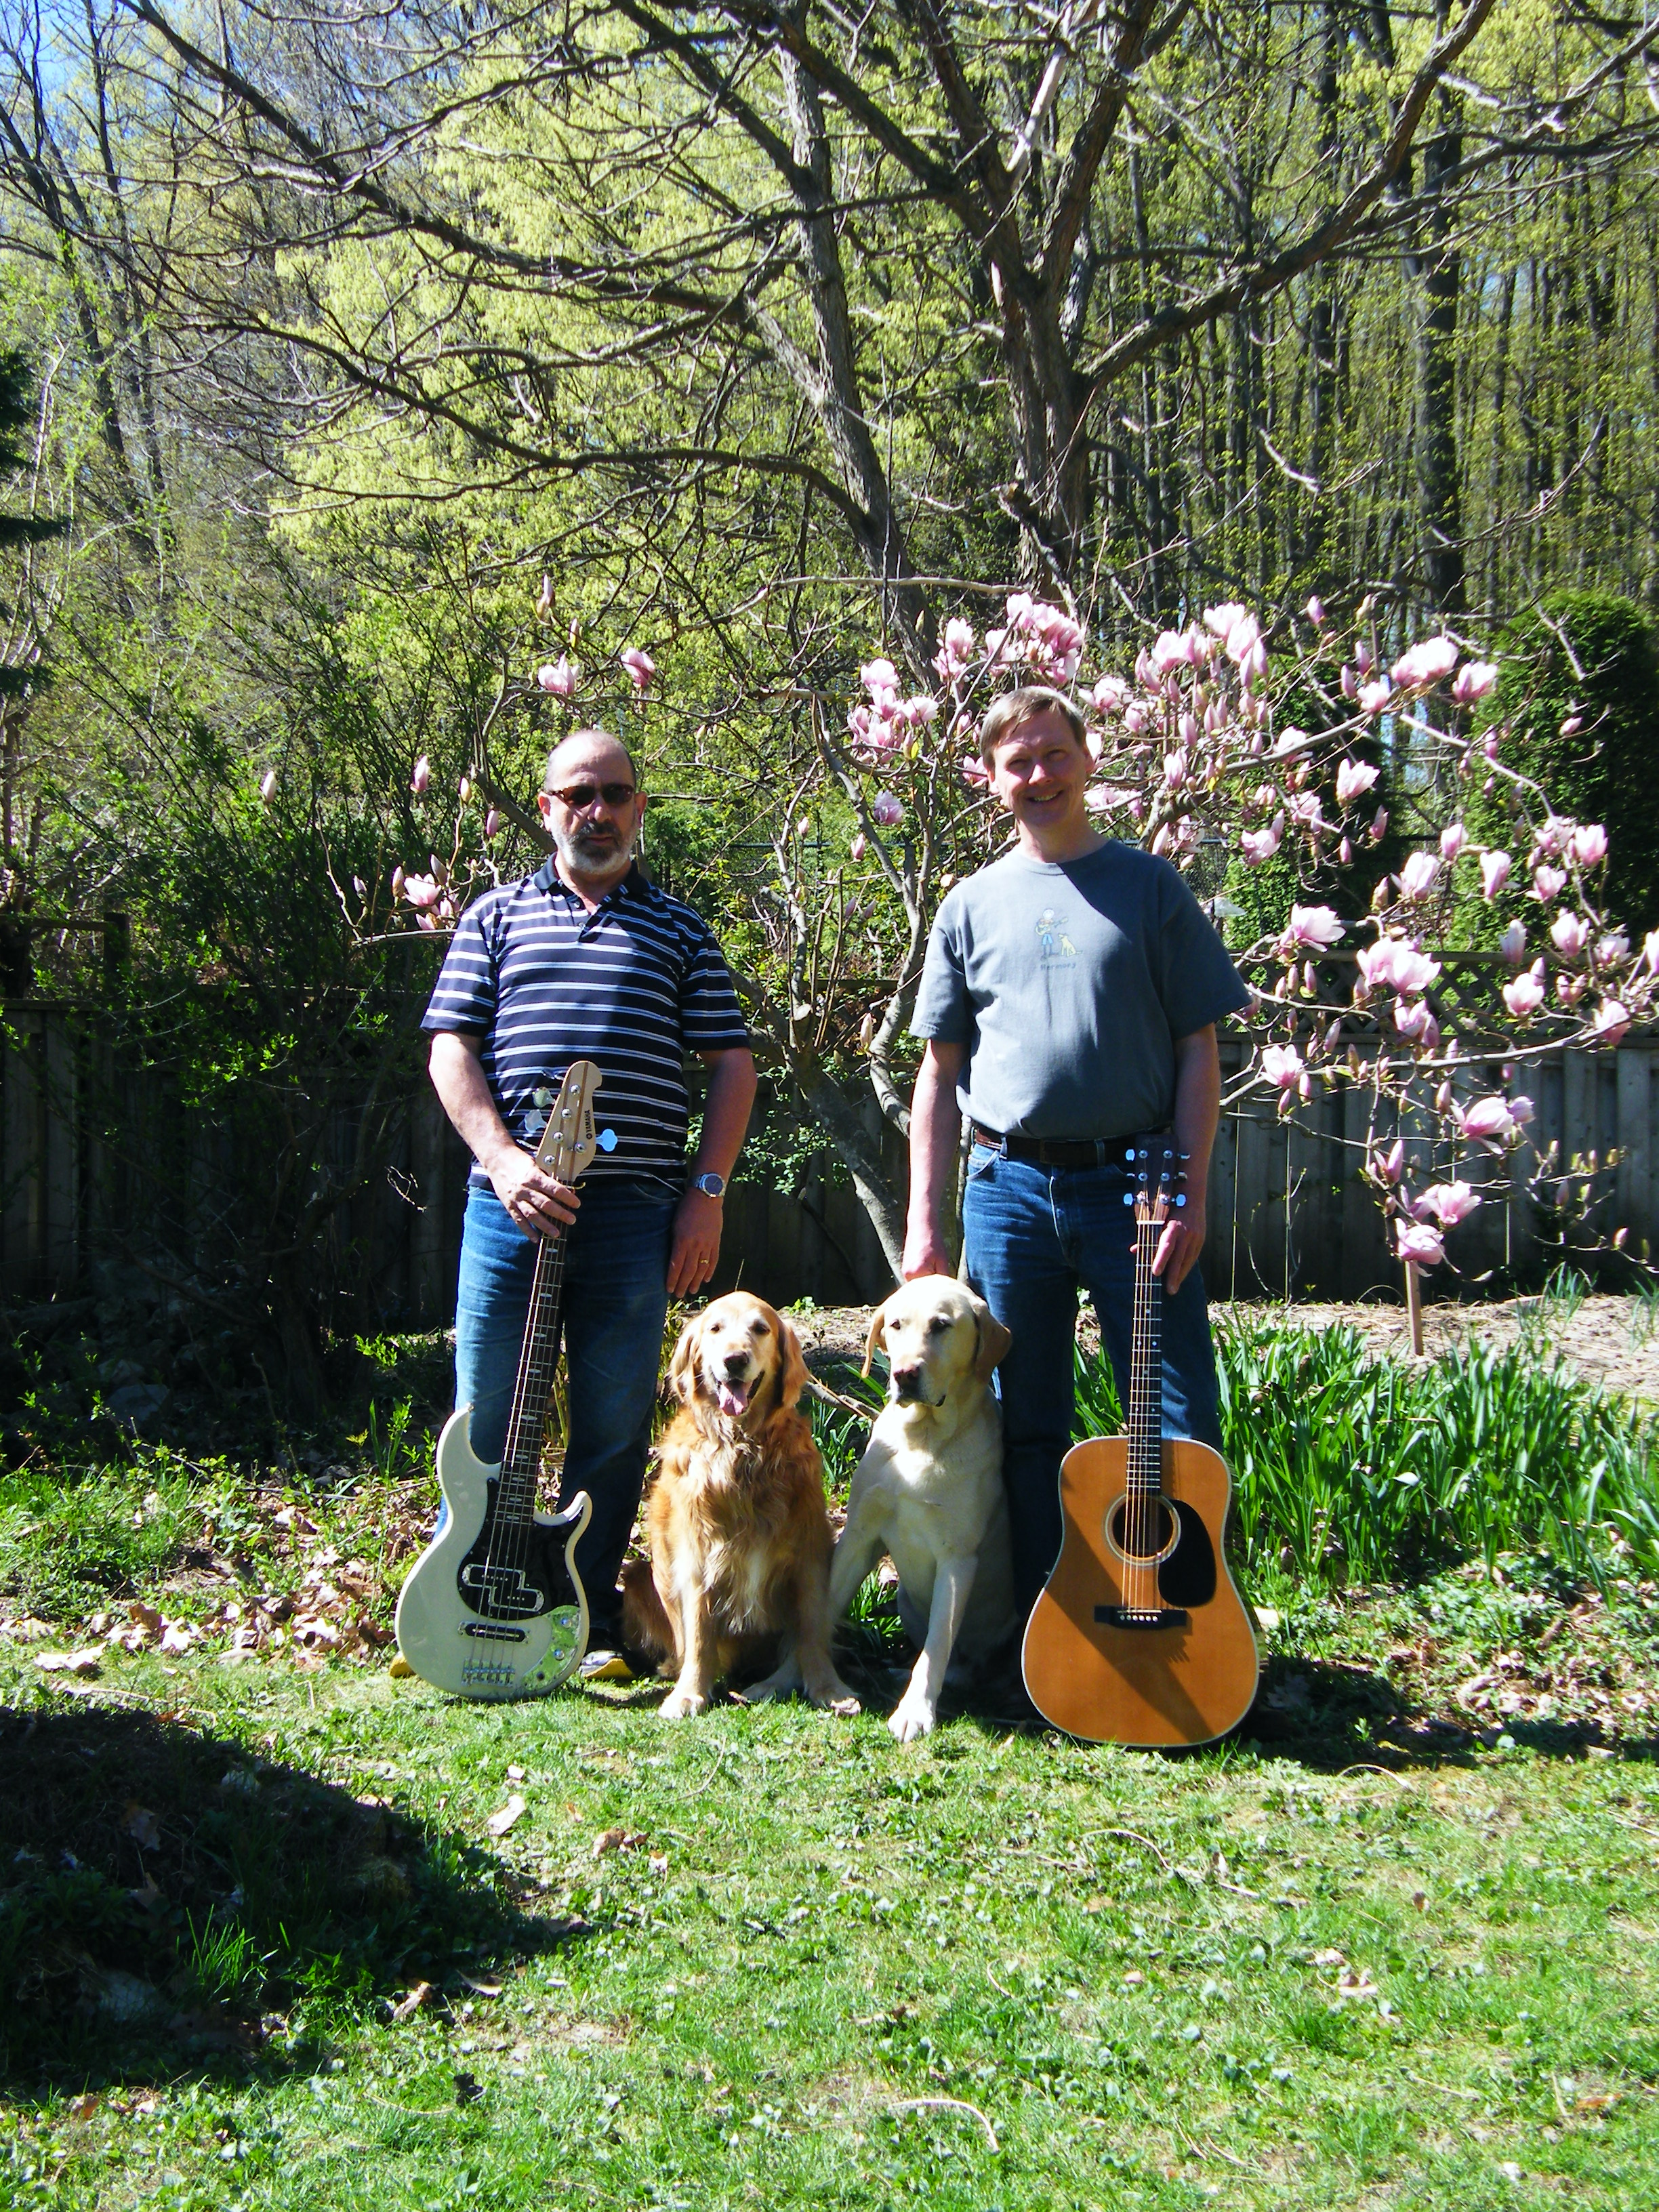 Peter and Eric with dogs and guitars in backyard